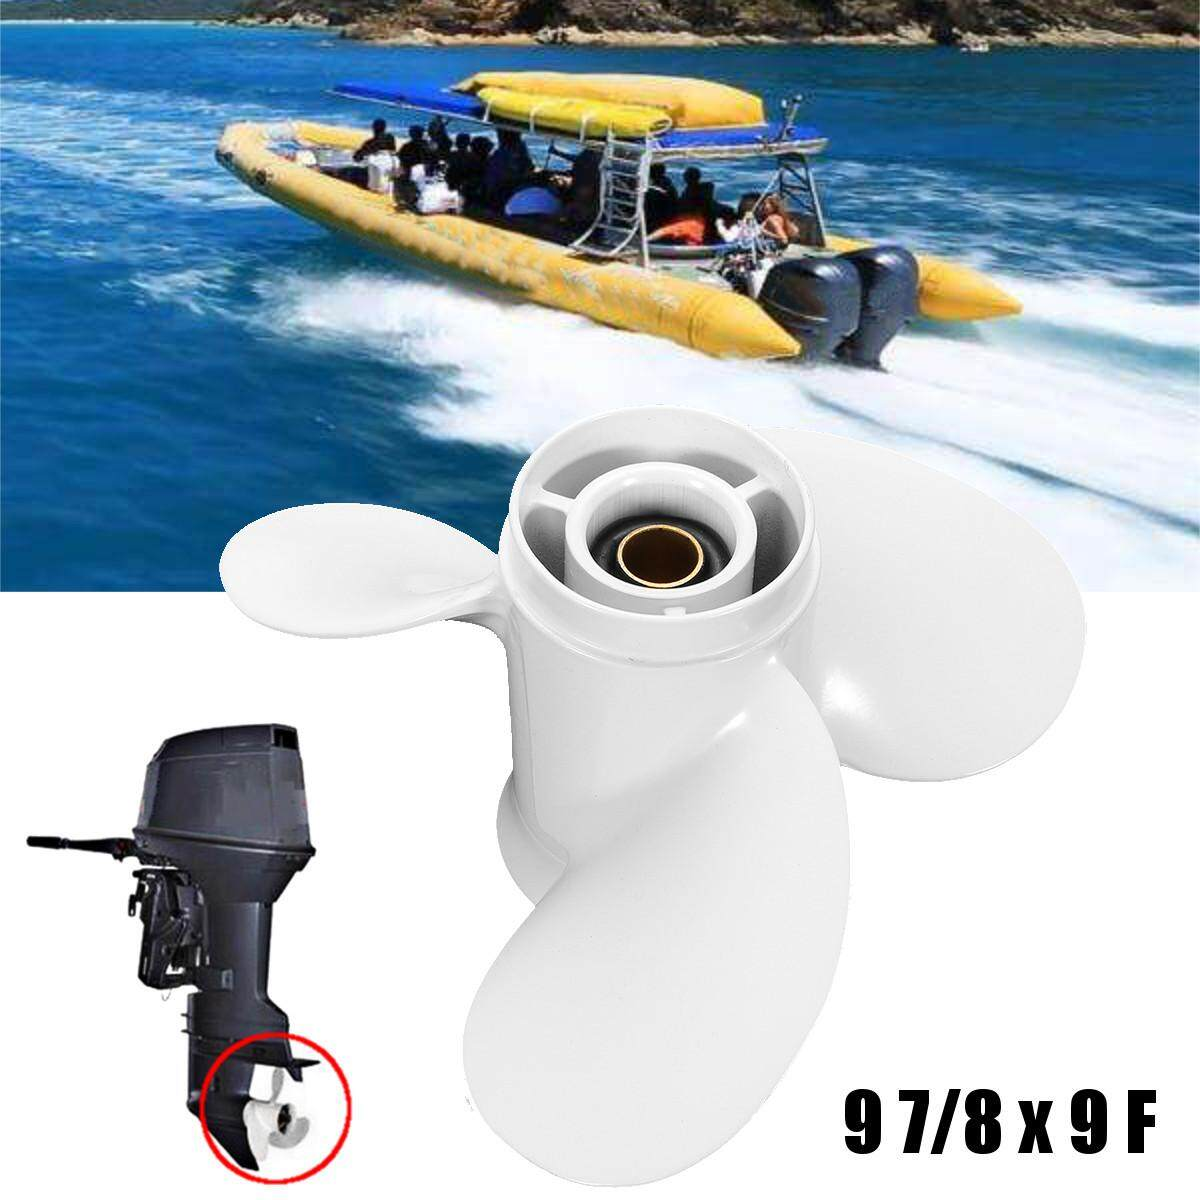 Propeller 3 Blade Aluminium Prop Outboards 10 Tooth Splines By Teamwin.